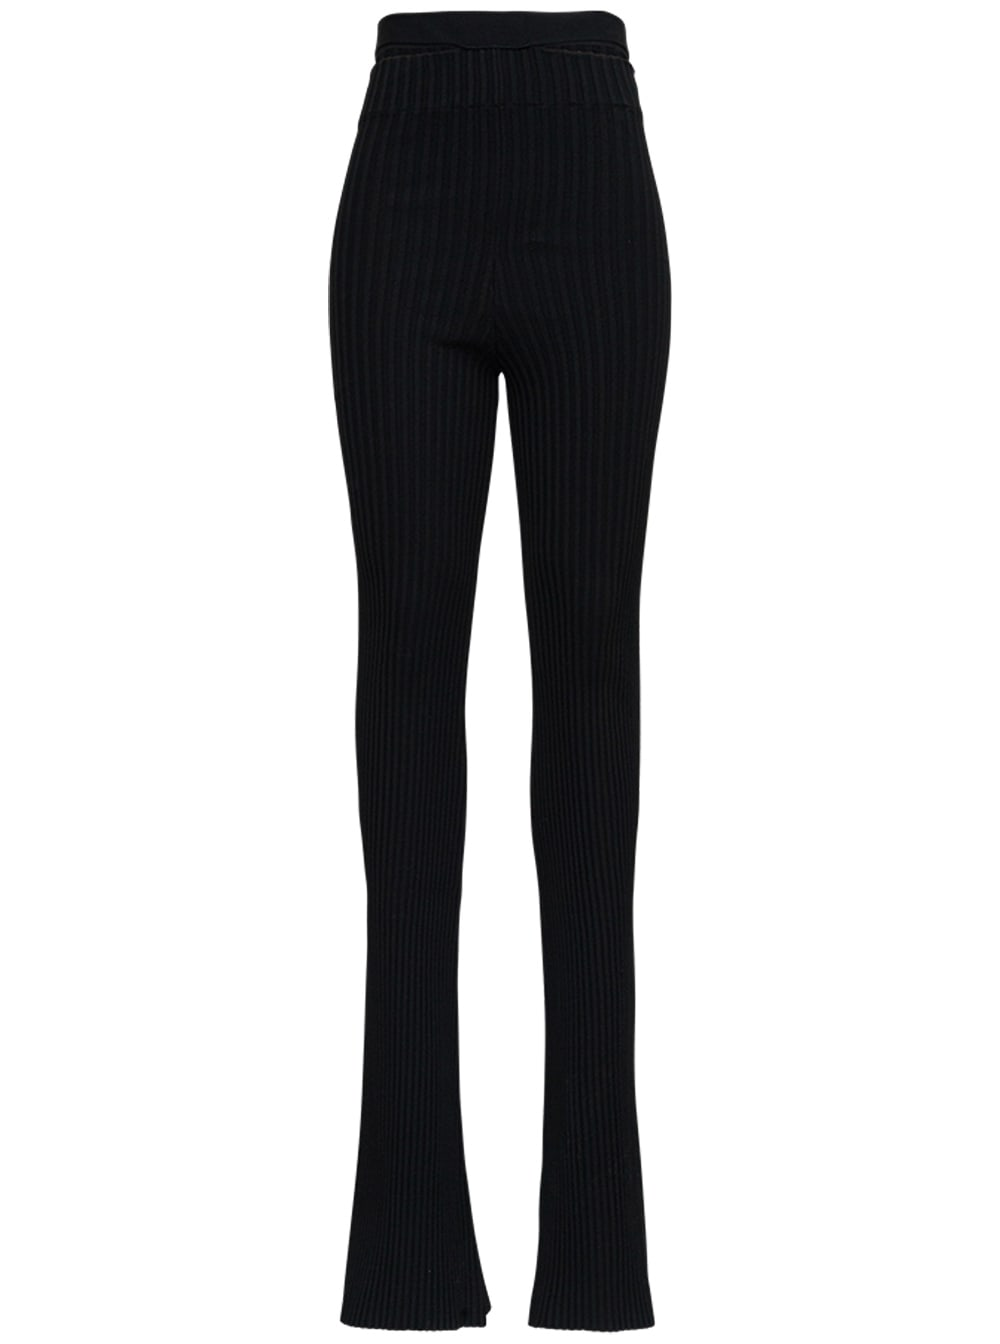 Ribbed Flared Pants In Viscose Blend